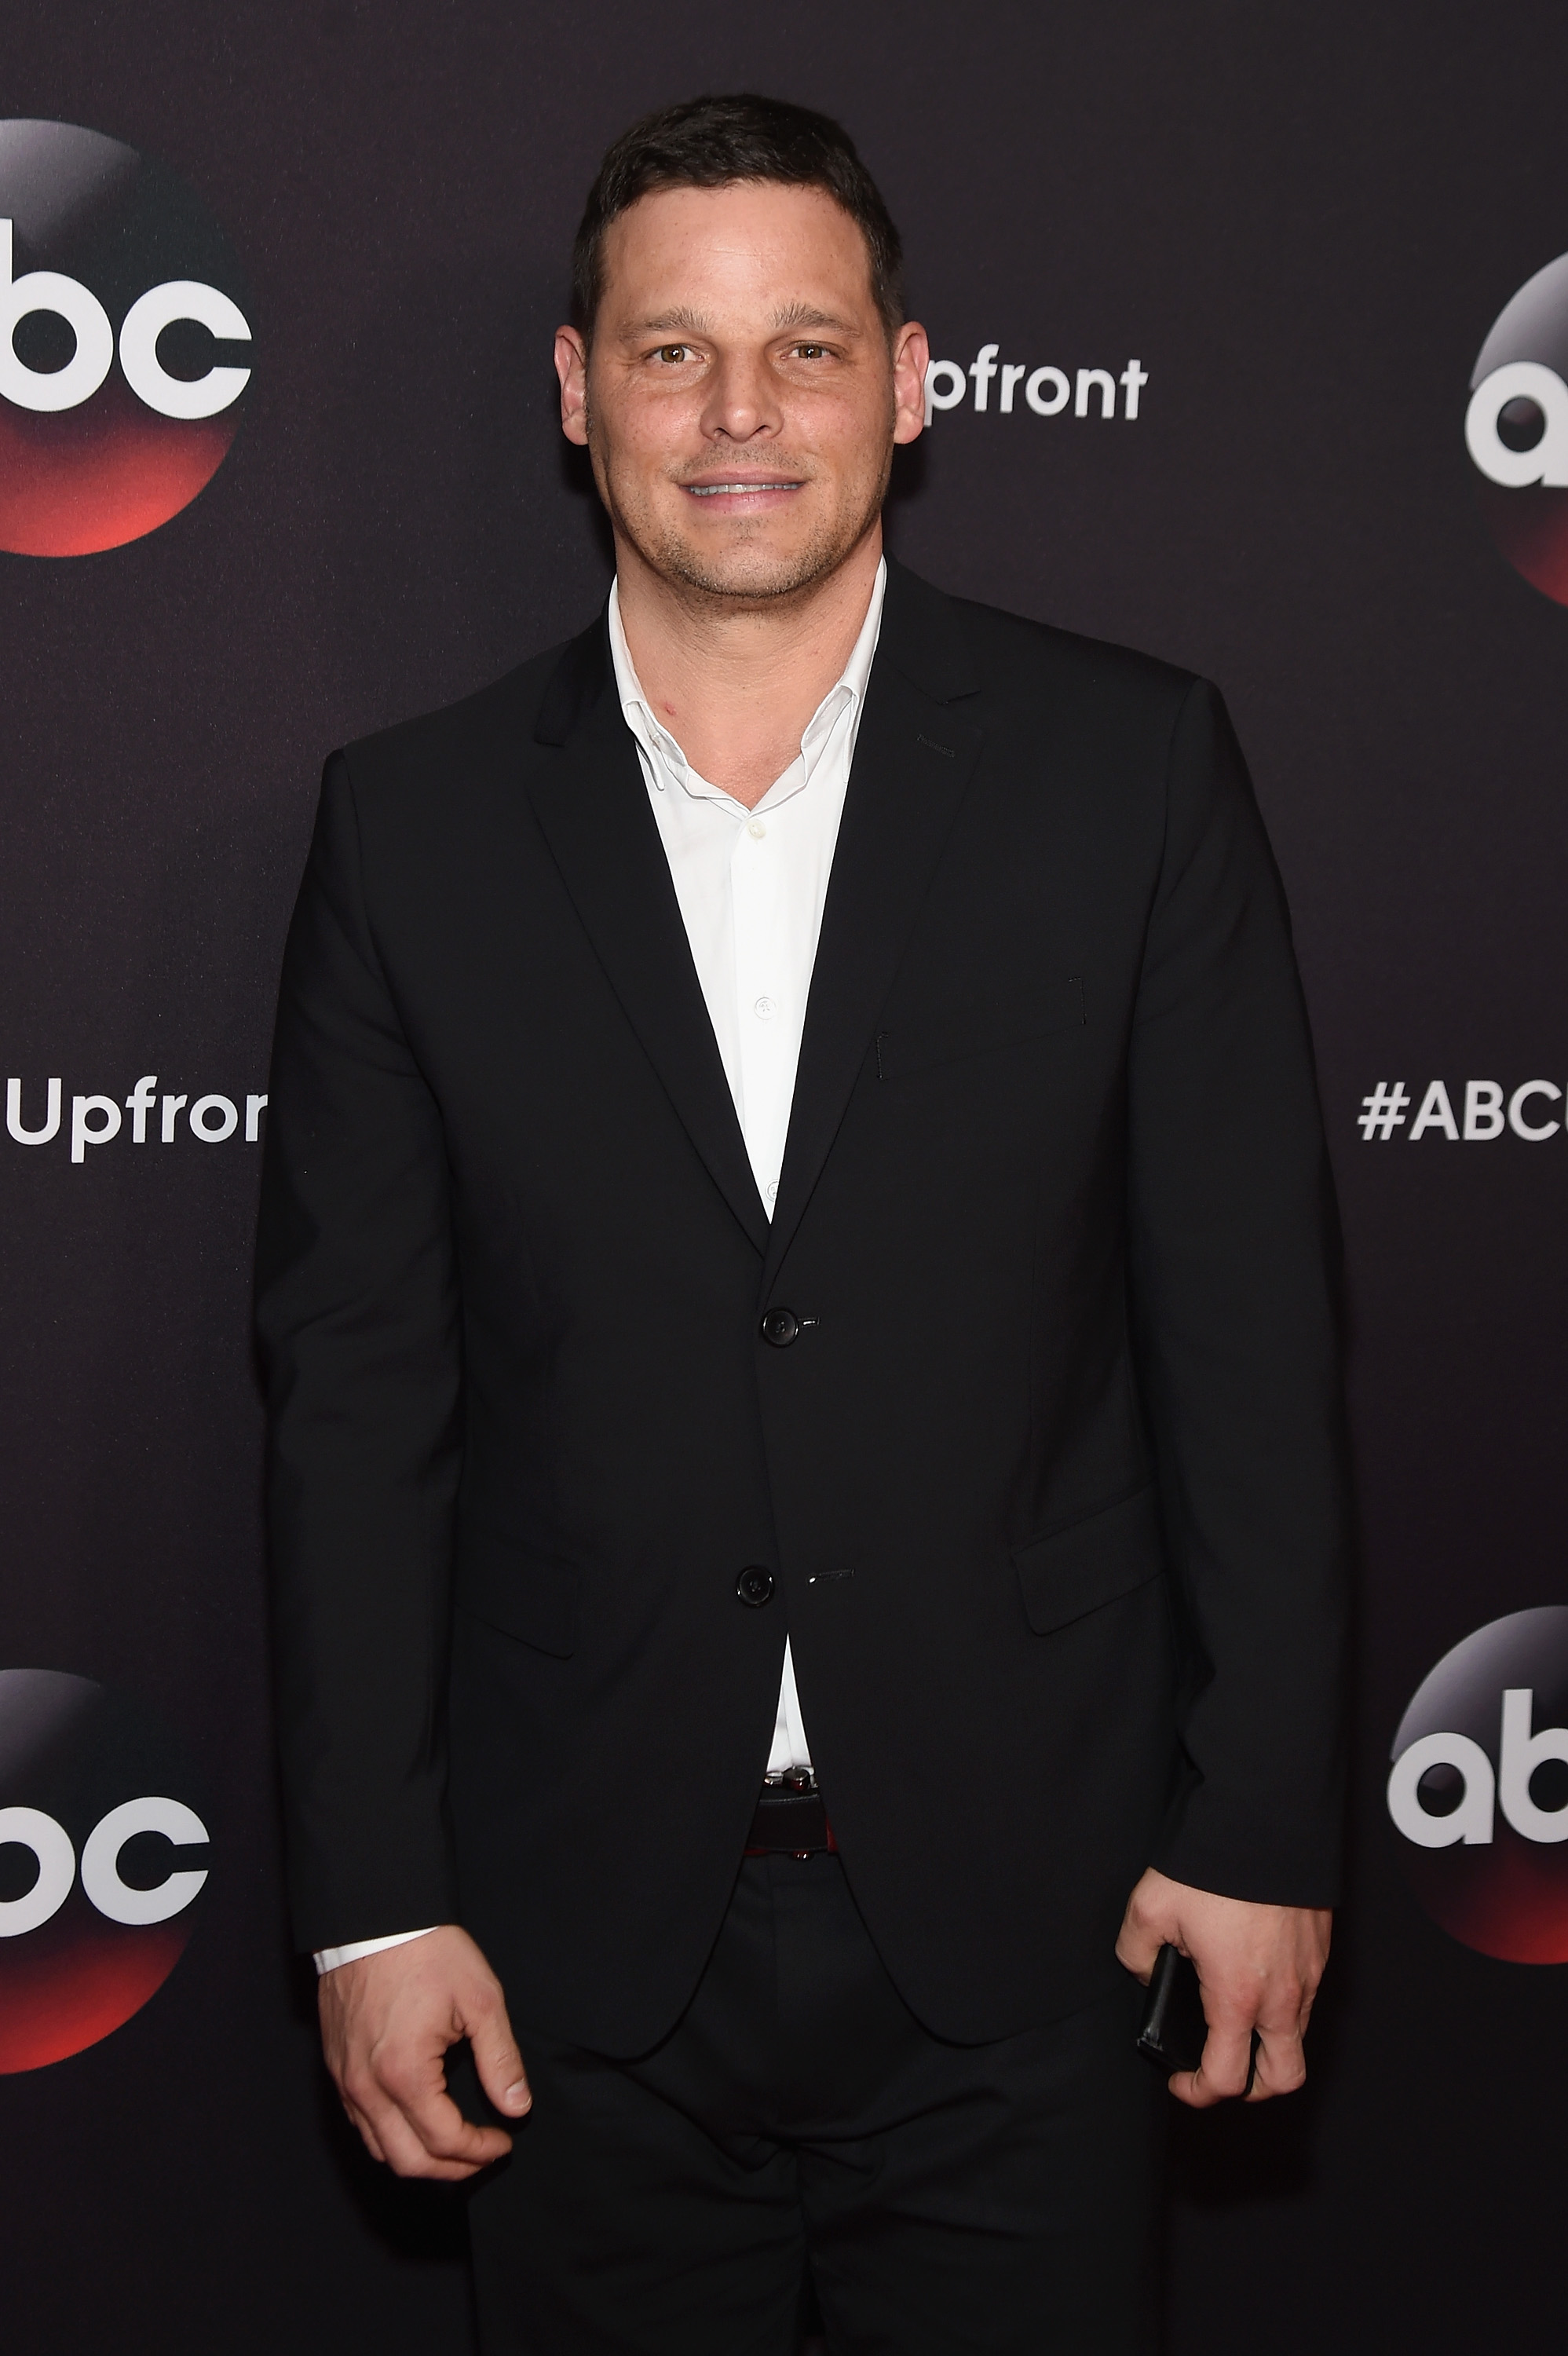 Actor Justin Chambers at NBC Upfront. Justin Chambers portrayed the role of Dr. Alex Karev in NBC's Grey's Anatomy